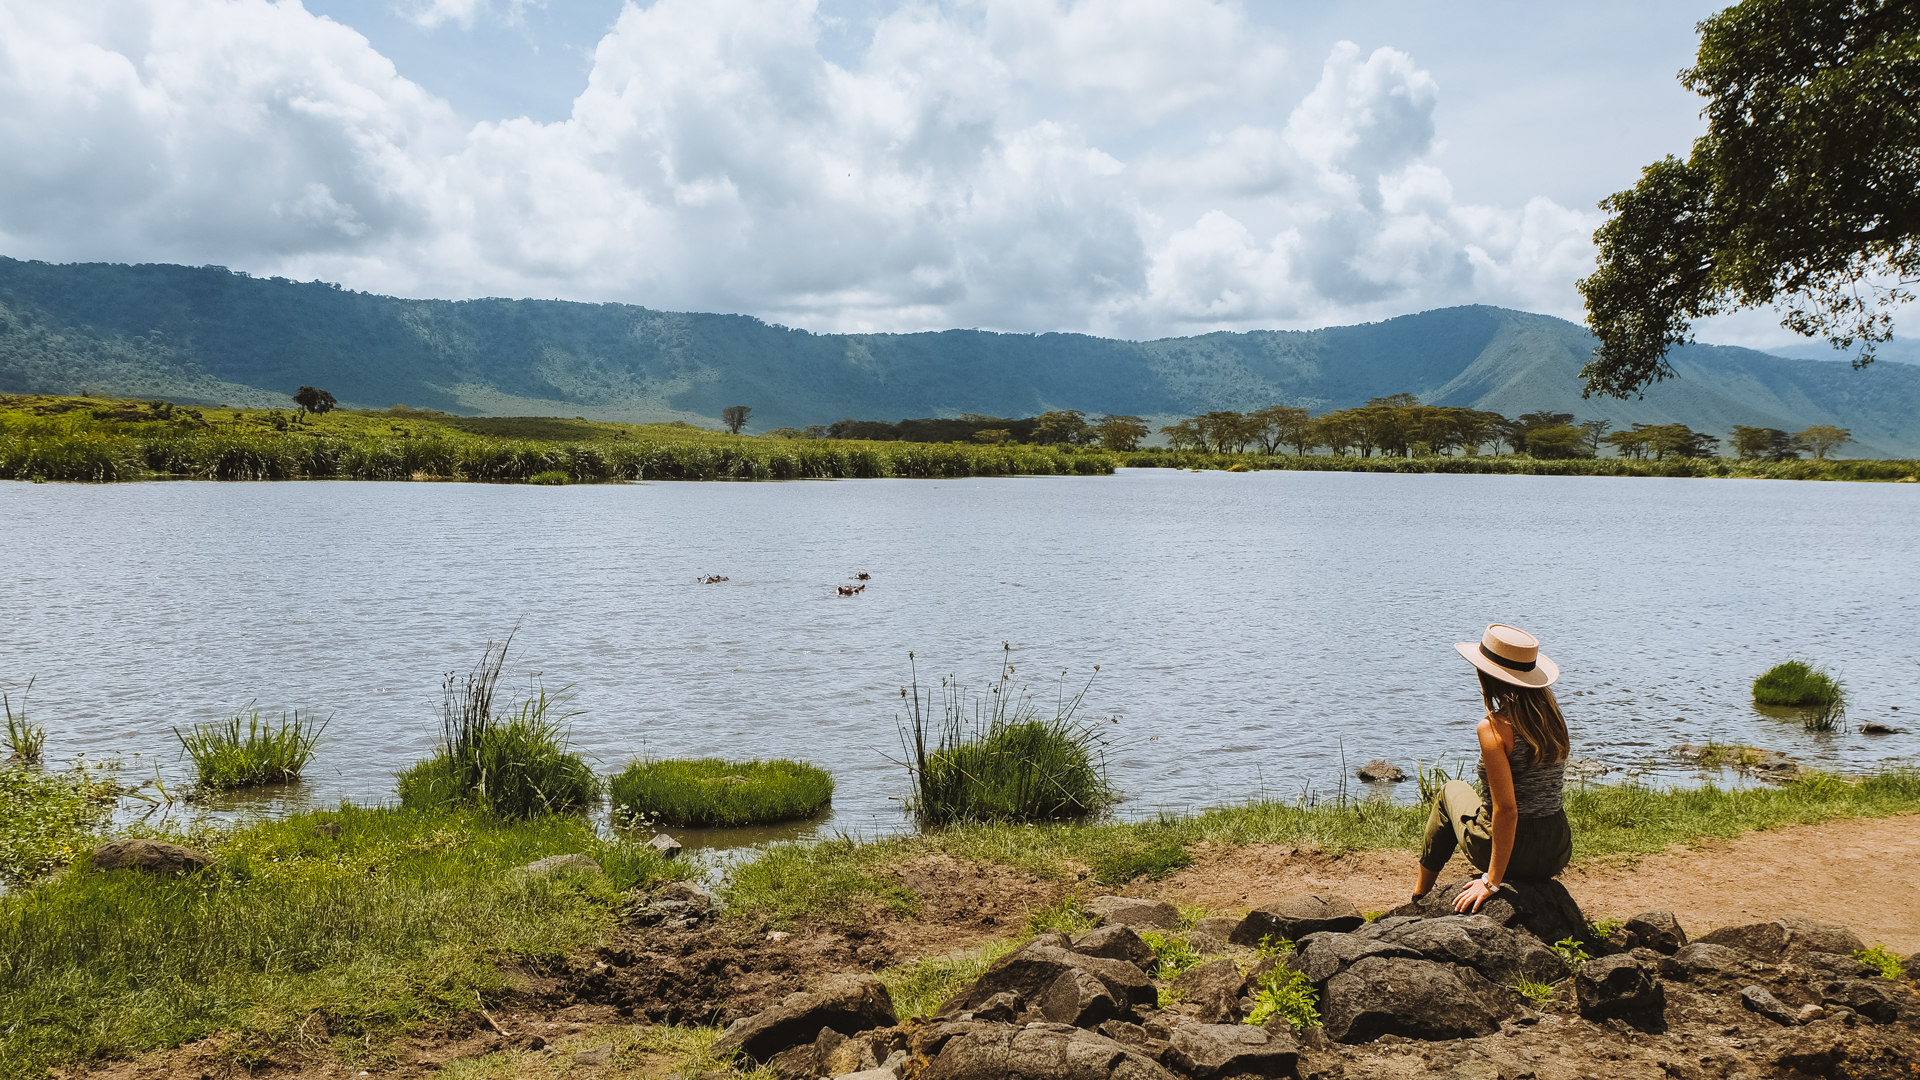 Jana watching the hippos bathe. There must have been dozens of them at least.